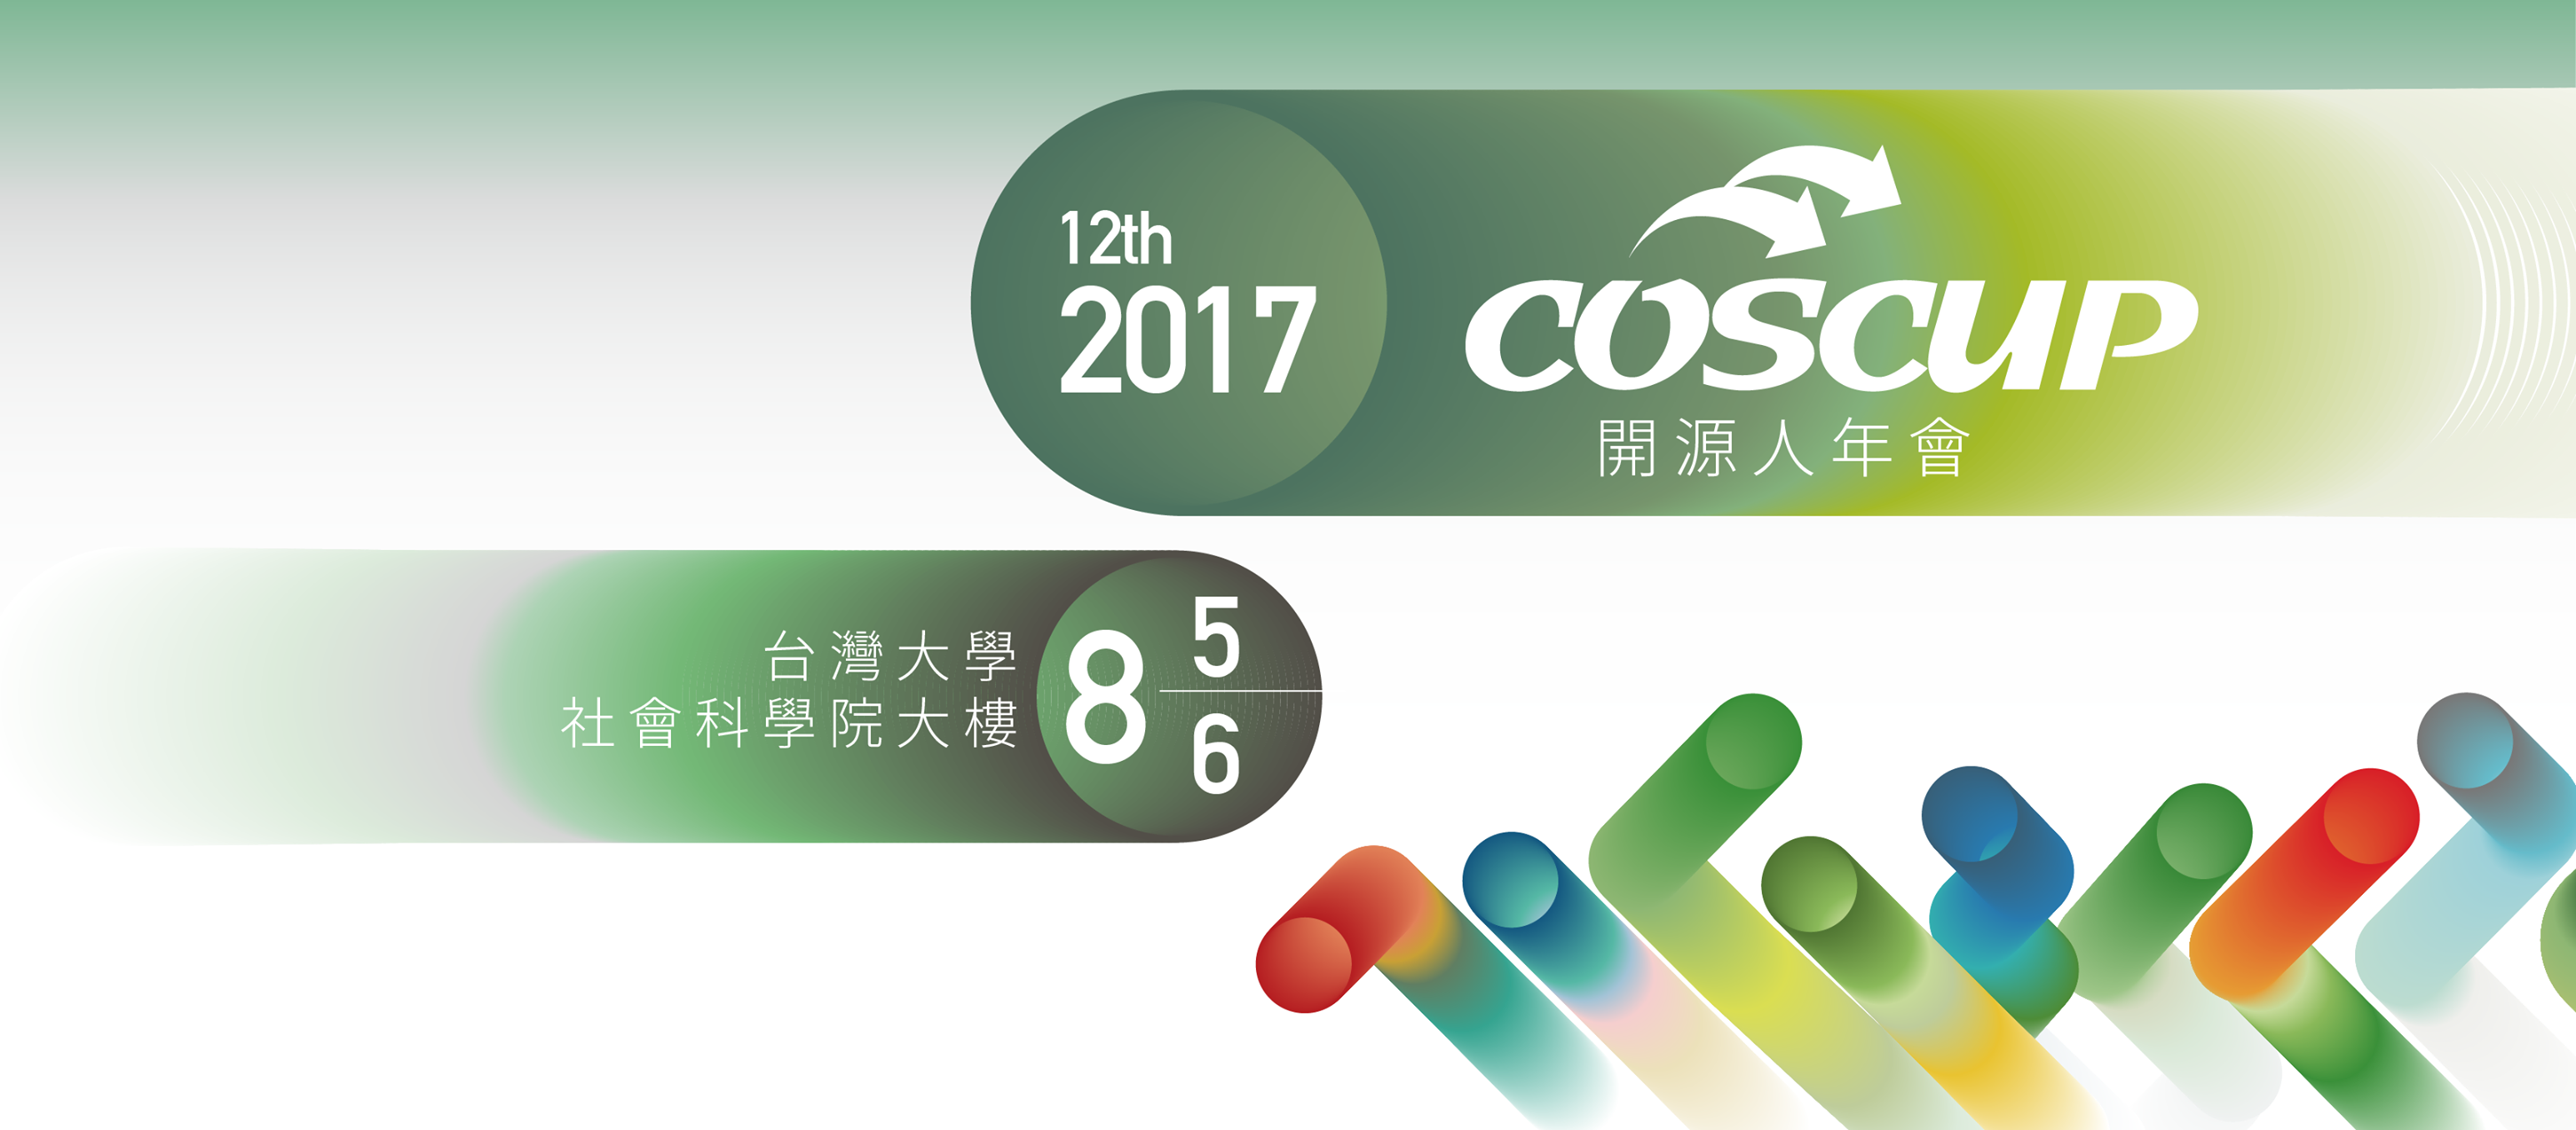 Event cover image for COSCUP 2017